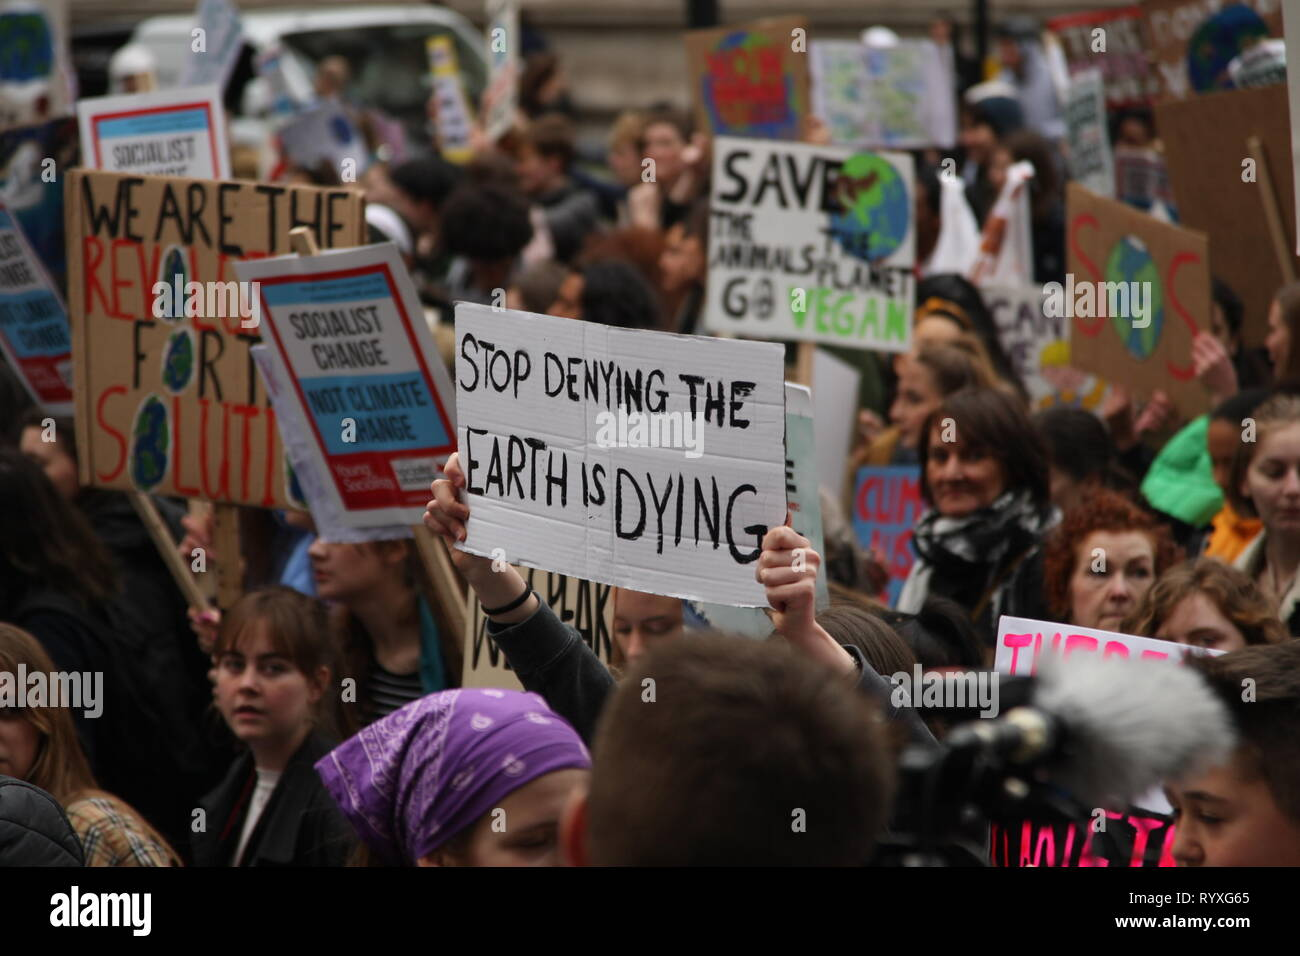 London, UK, 15th March 2019. School and college students in London take part in the second protest calling for the World's governments to make environmental issues a priority. They have walked out of school to gather outside the Houses of Parliament, and march around the capital, stopping at Buckingham Palace. It is one of many protests taking place at the same time around the country. Roland Ravenhill/Alamy Live News. Stock Photo